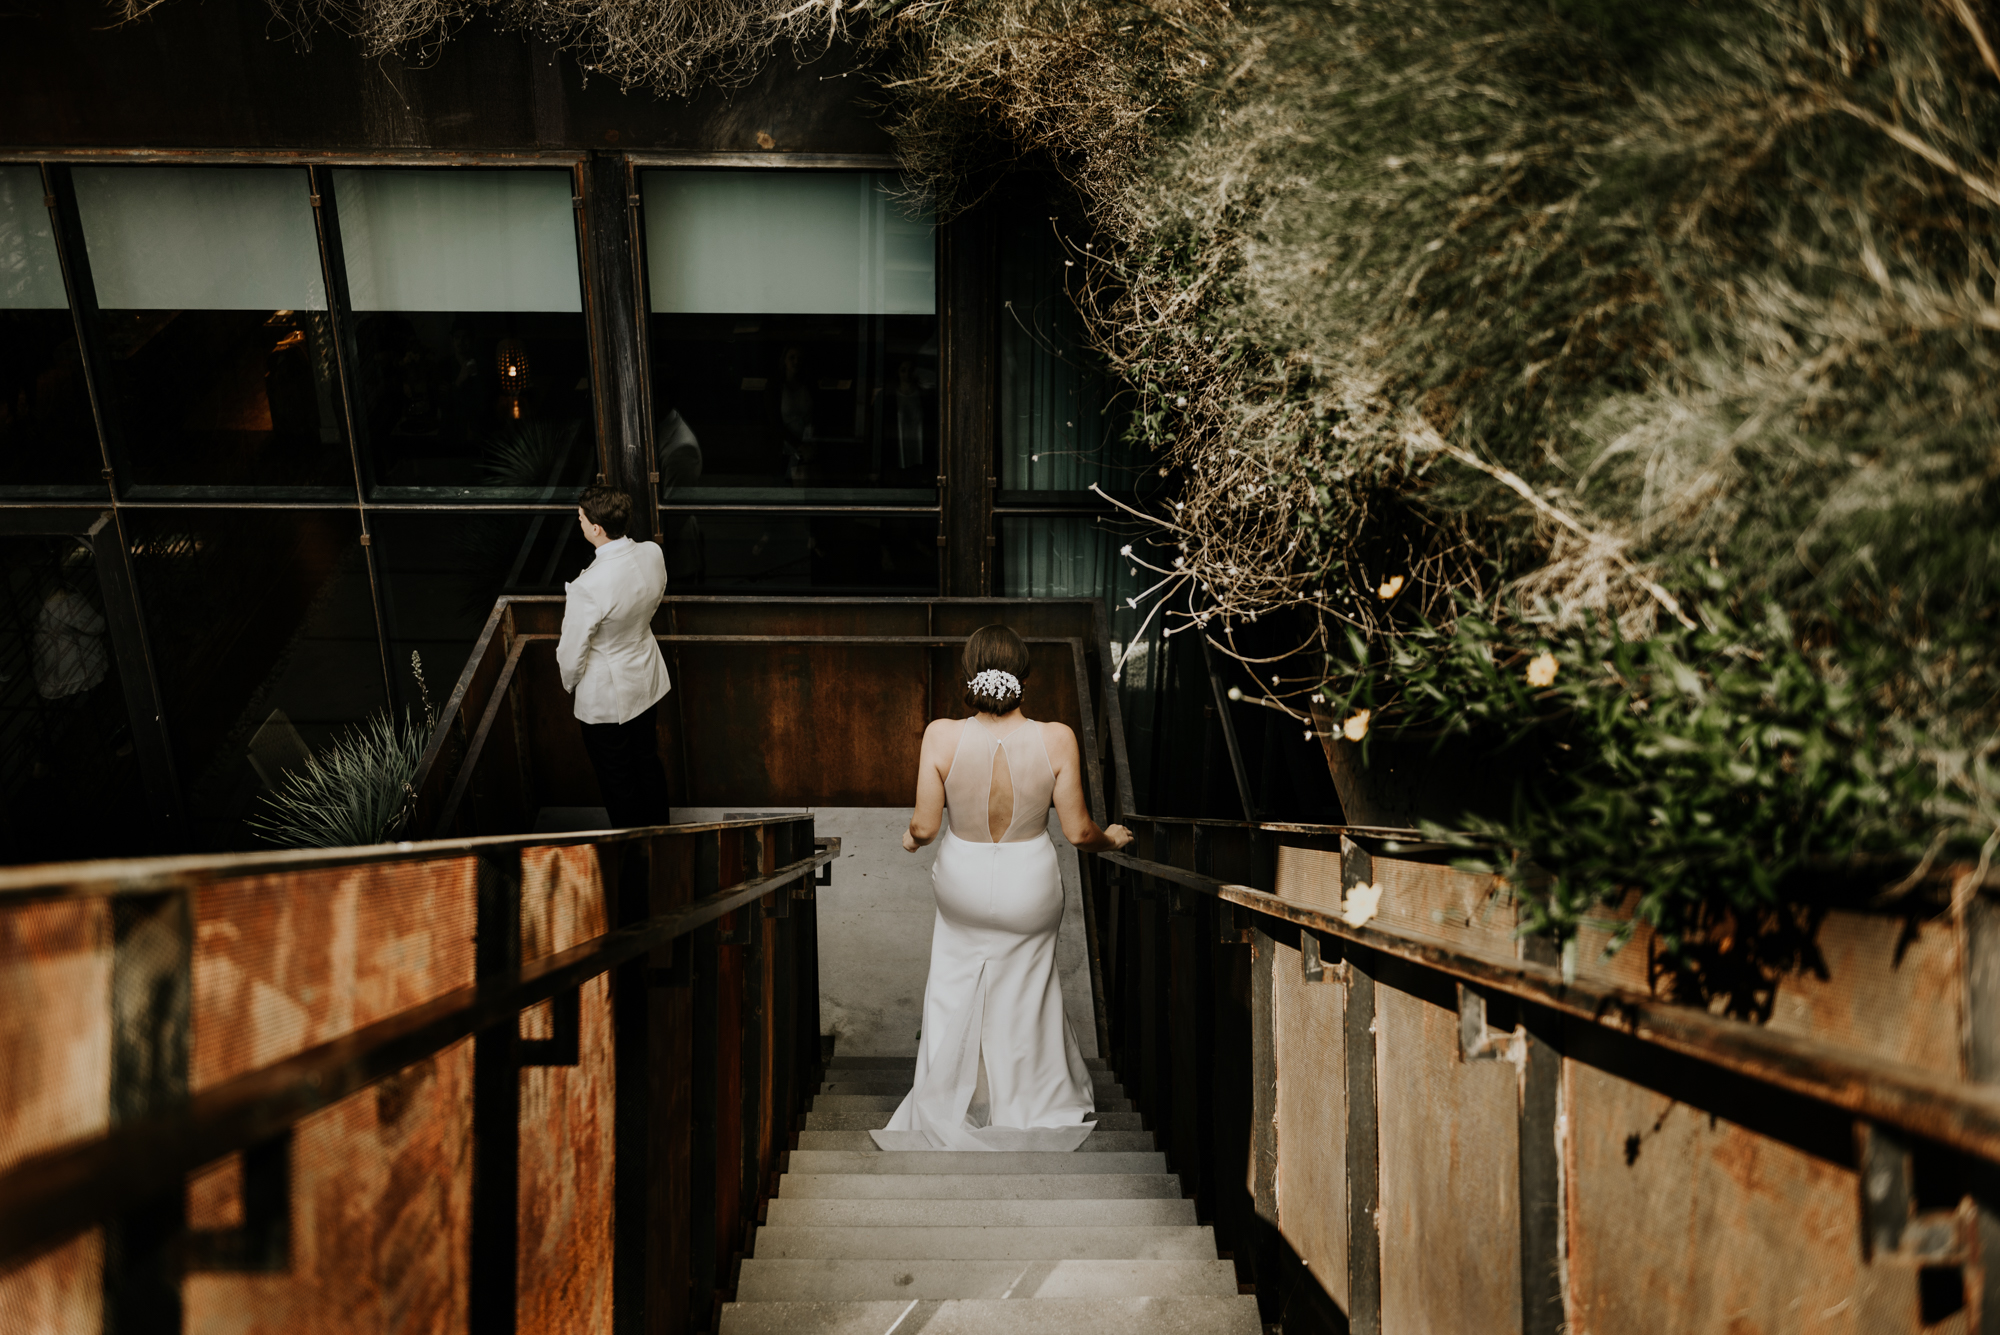 Intimate Wedding First Look Photos at South Congress Hotel in Austin, Texas